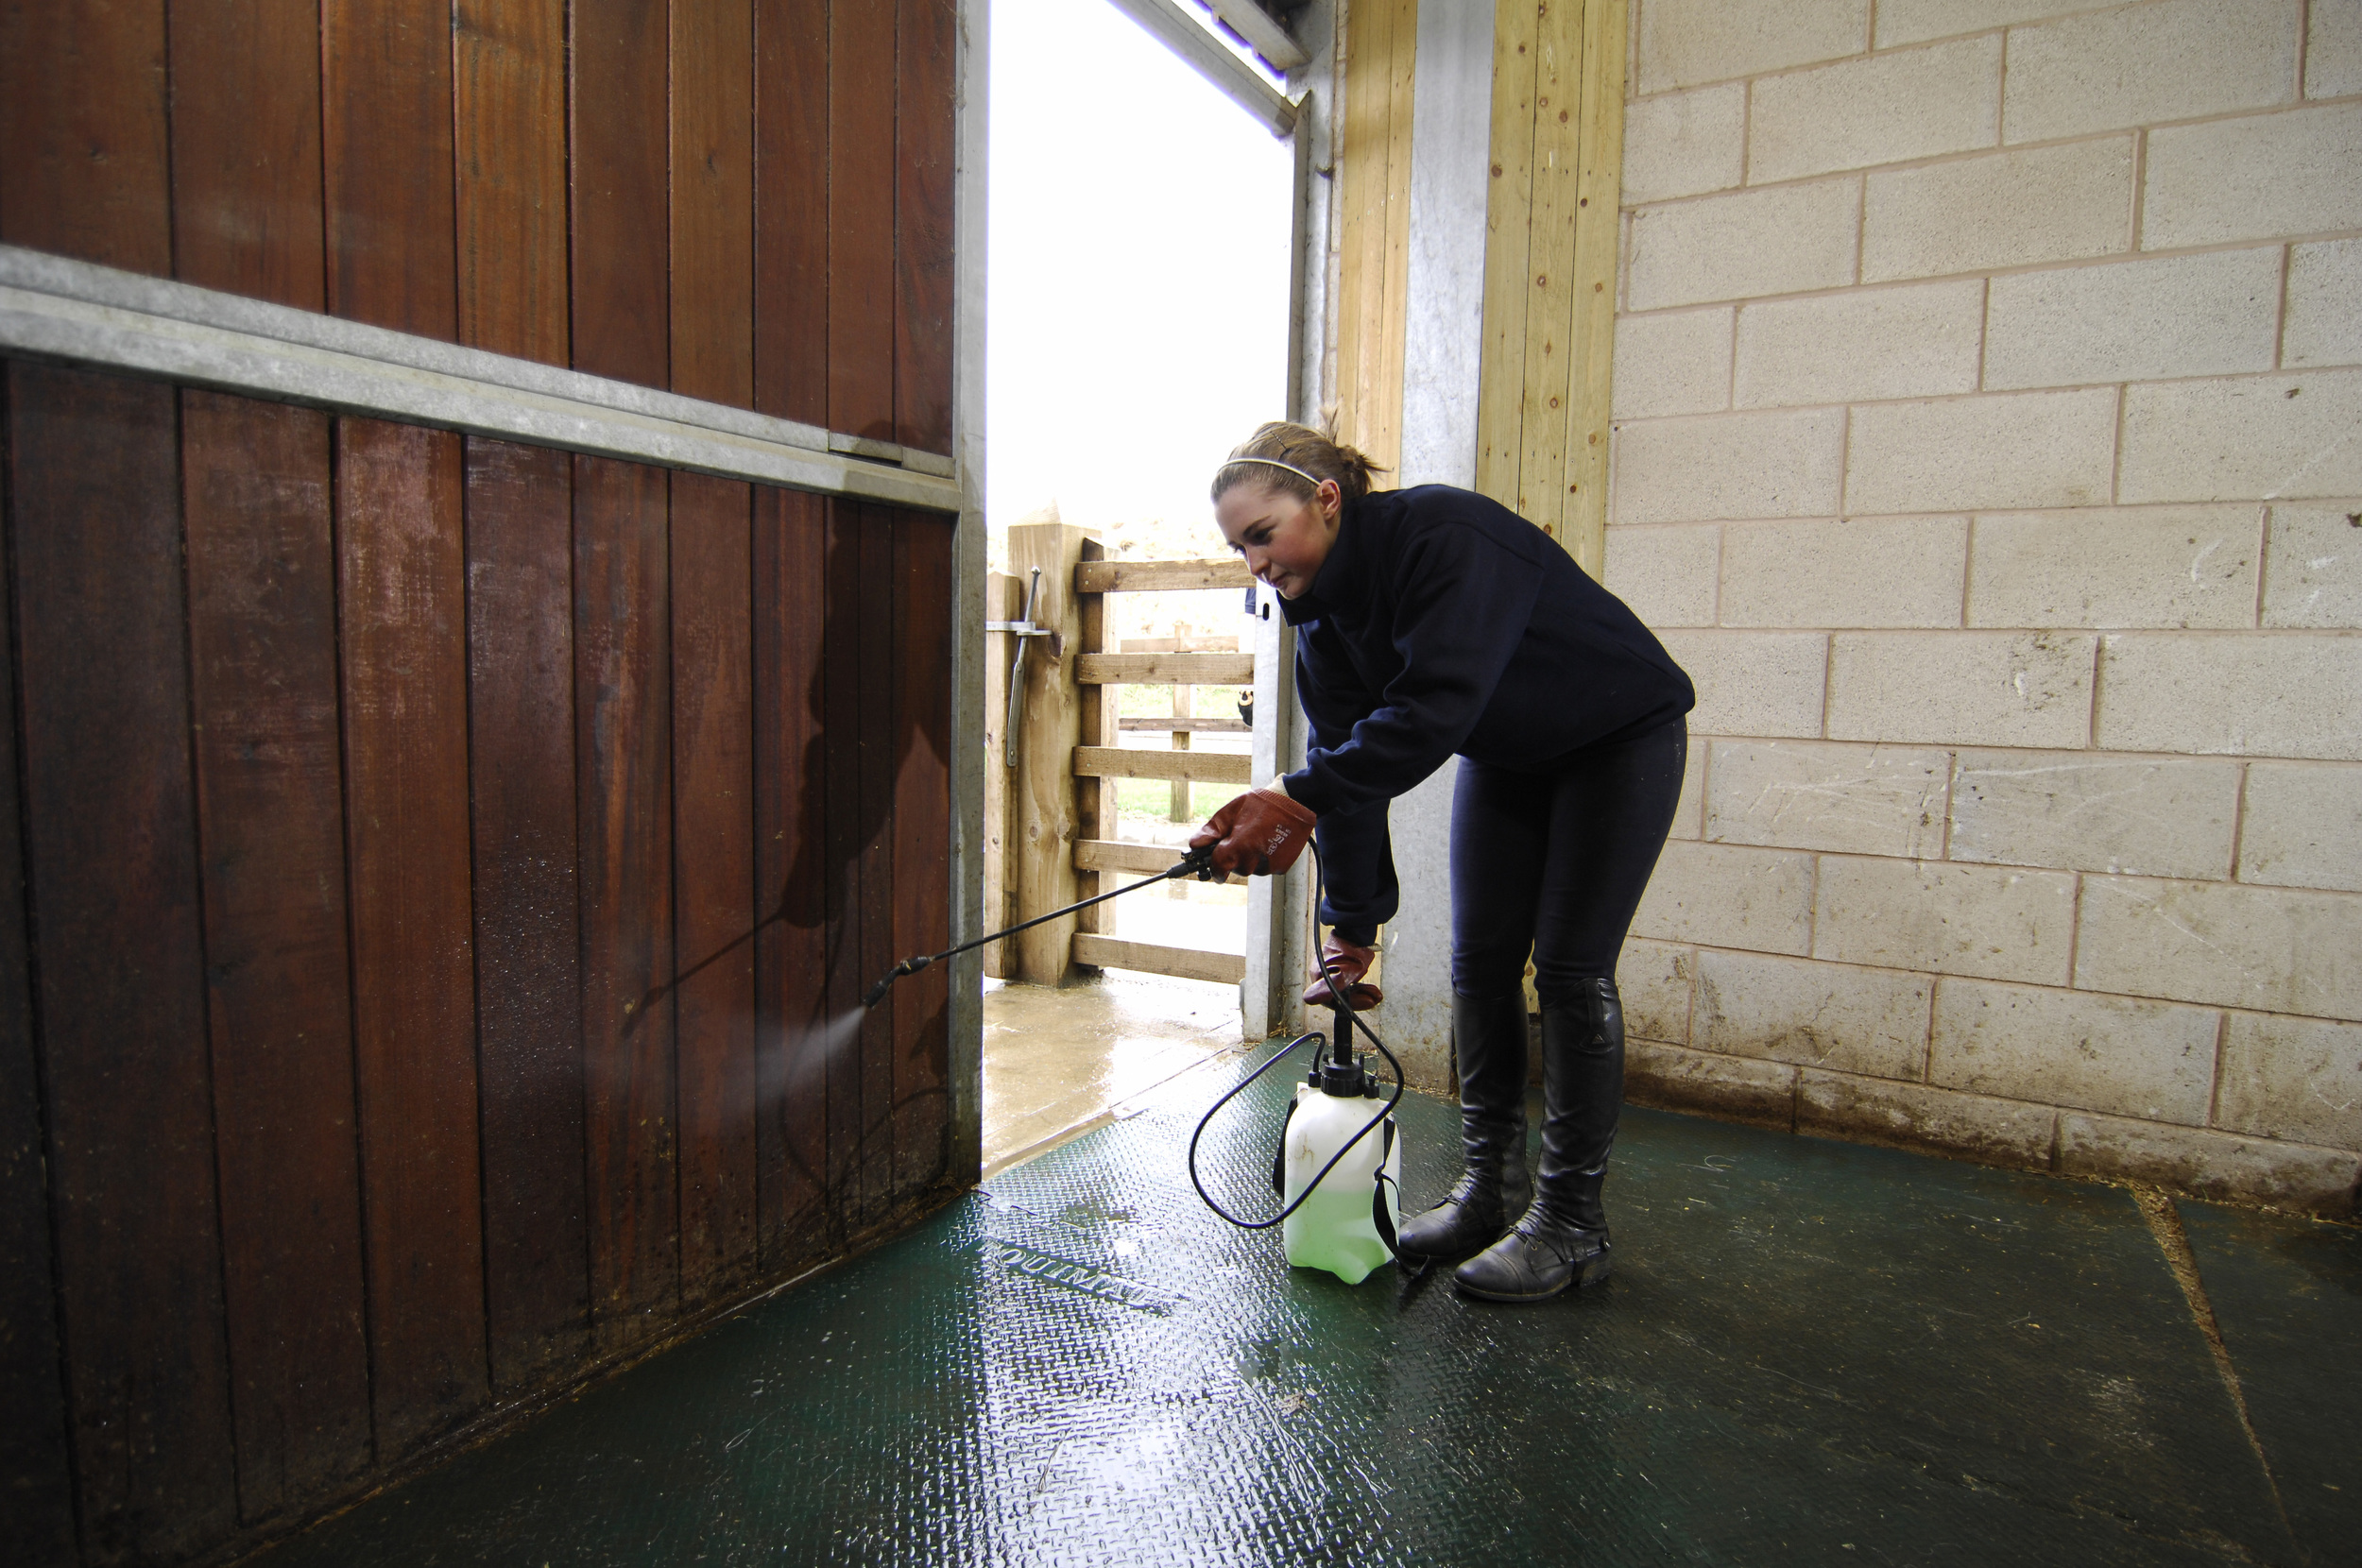 Disinfecting a new stable before your horse moves in is a wise precaution to help prevent ringworm.